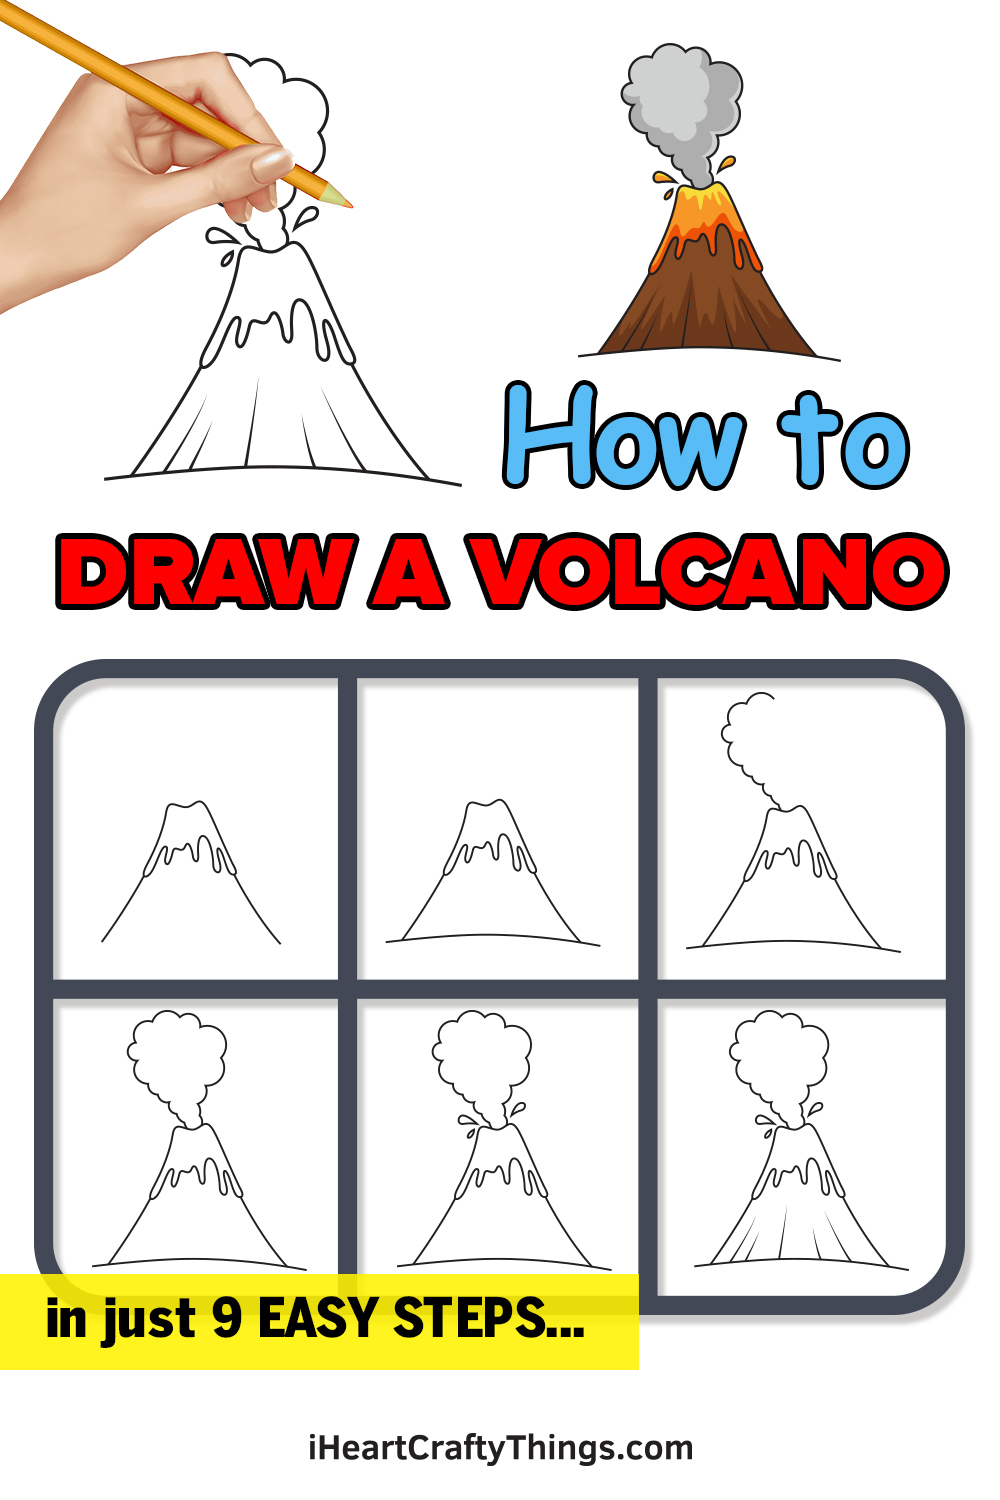 how to draw a volcano in 9 easy steps